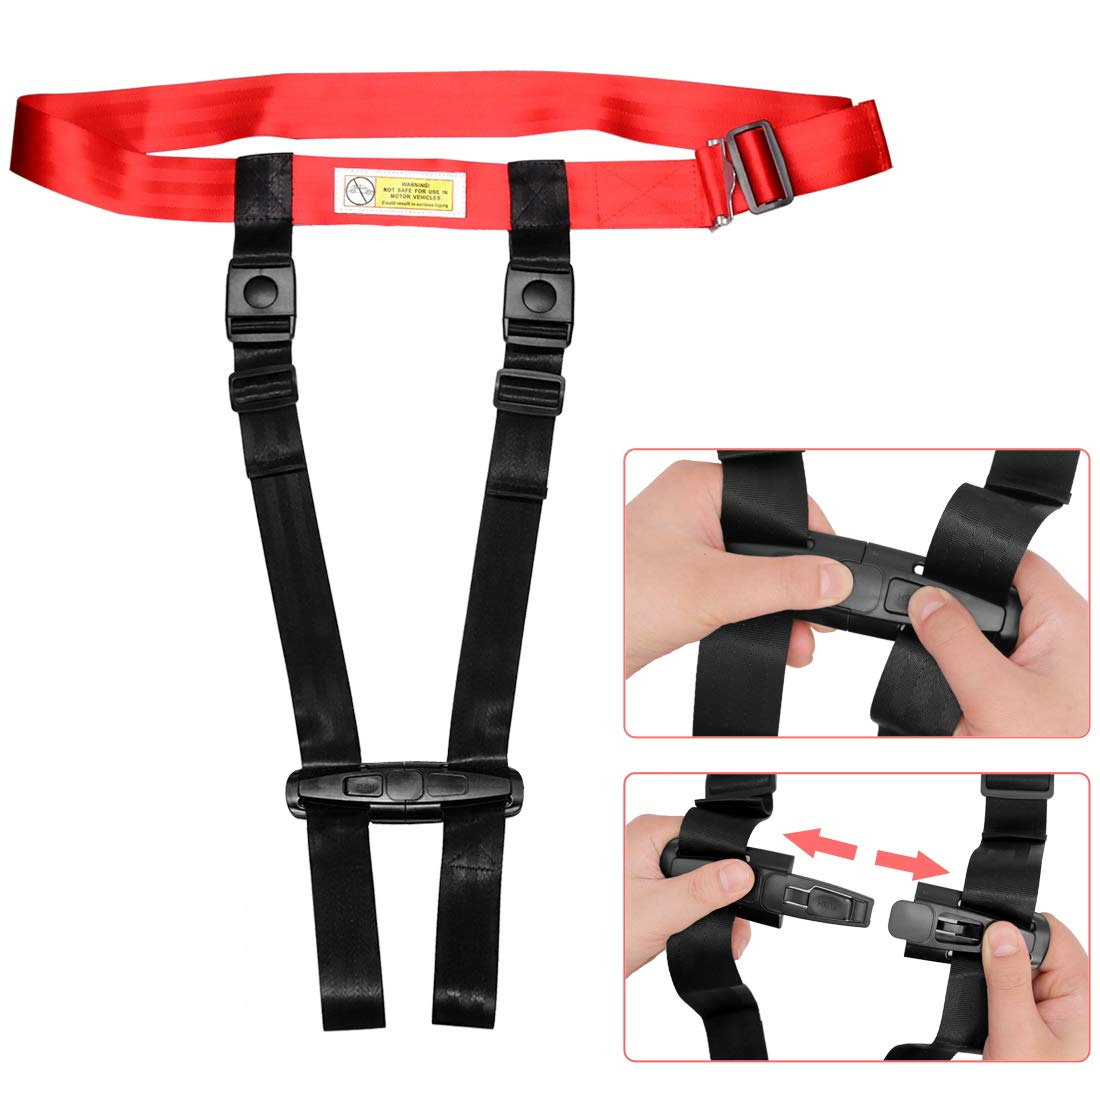 Child Airplane Travel Harness Safety Clip Strap Restraint System for Baby, Toddlers & Kids- for Airplane Travel Use Only by Together-life (Image #7)